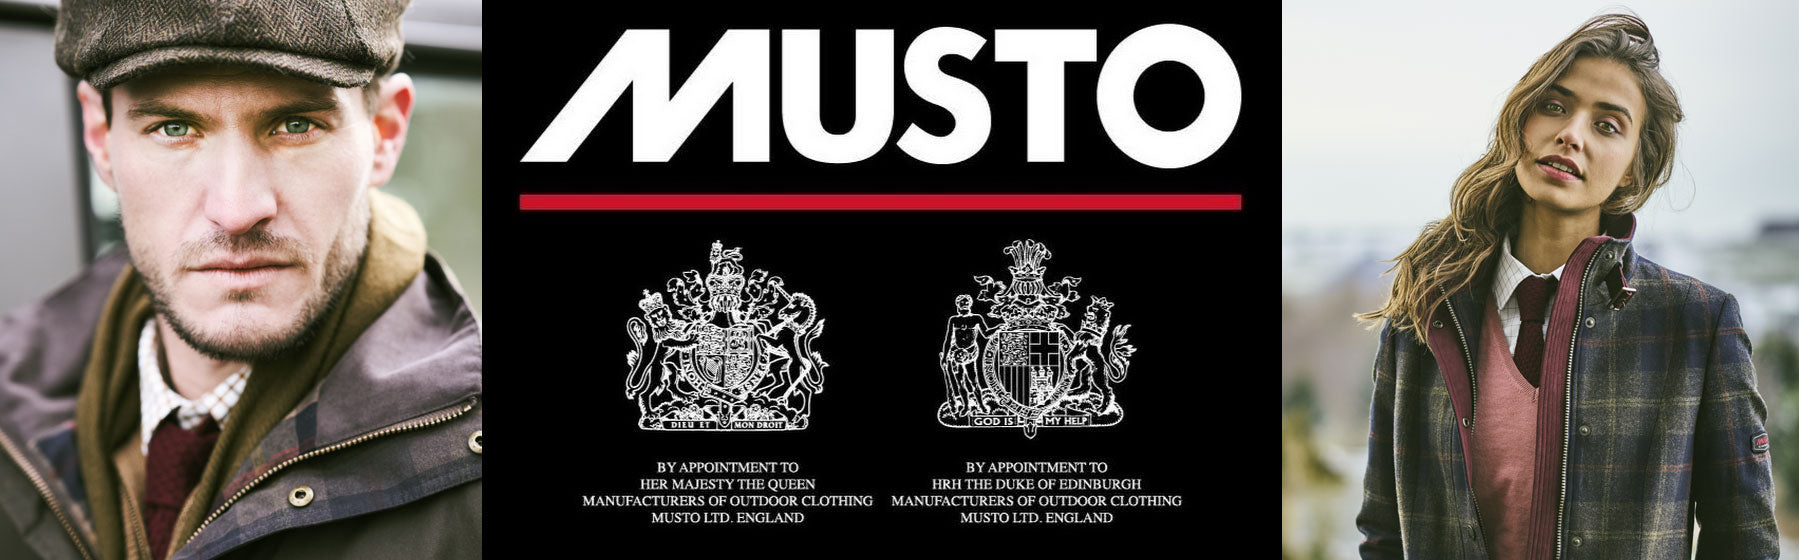 Musto - Country Collection. By Royal Appointment